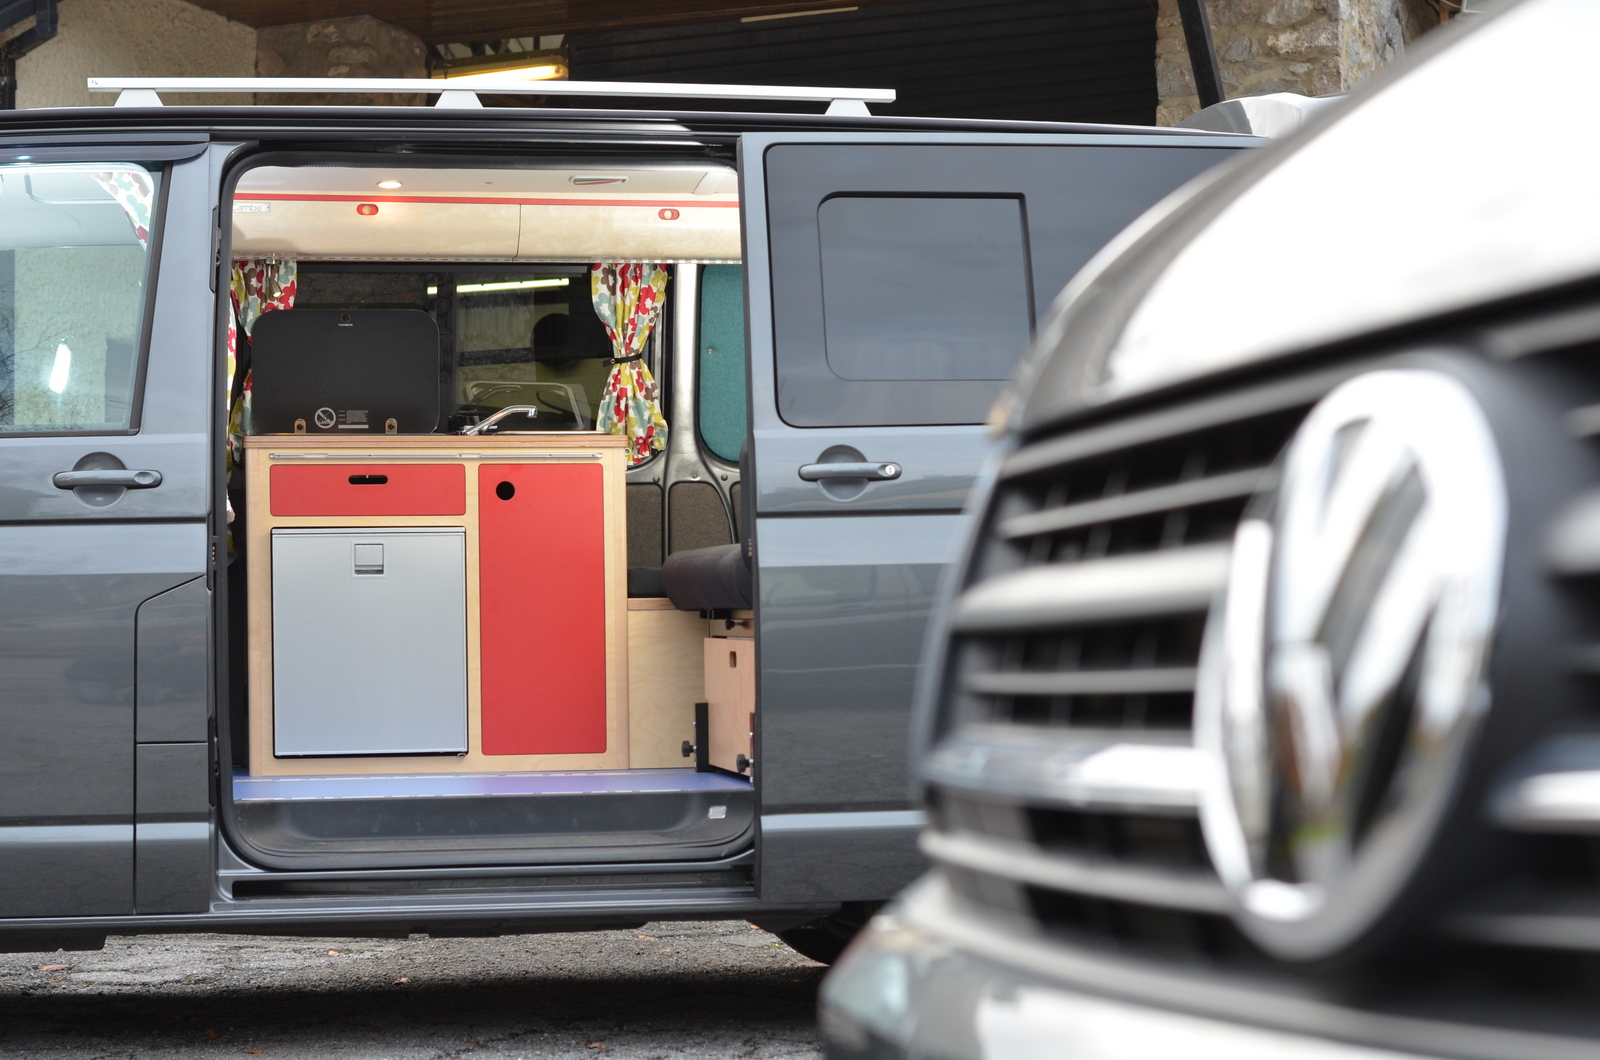 Side view of freestanding bespoke campervan red plywood kitchen unit with sink, built-in fridge freezer and gas hob and close up of VW logo